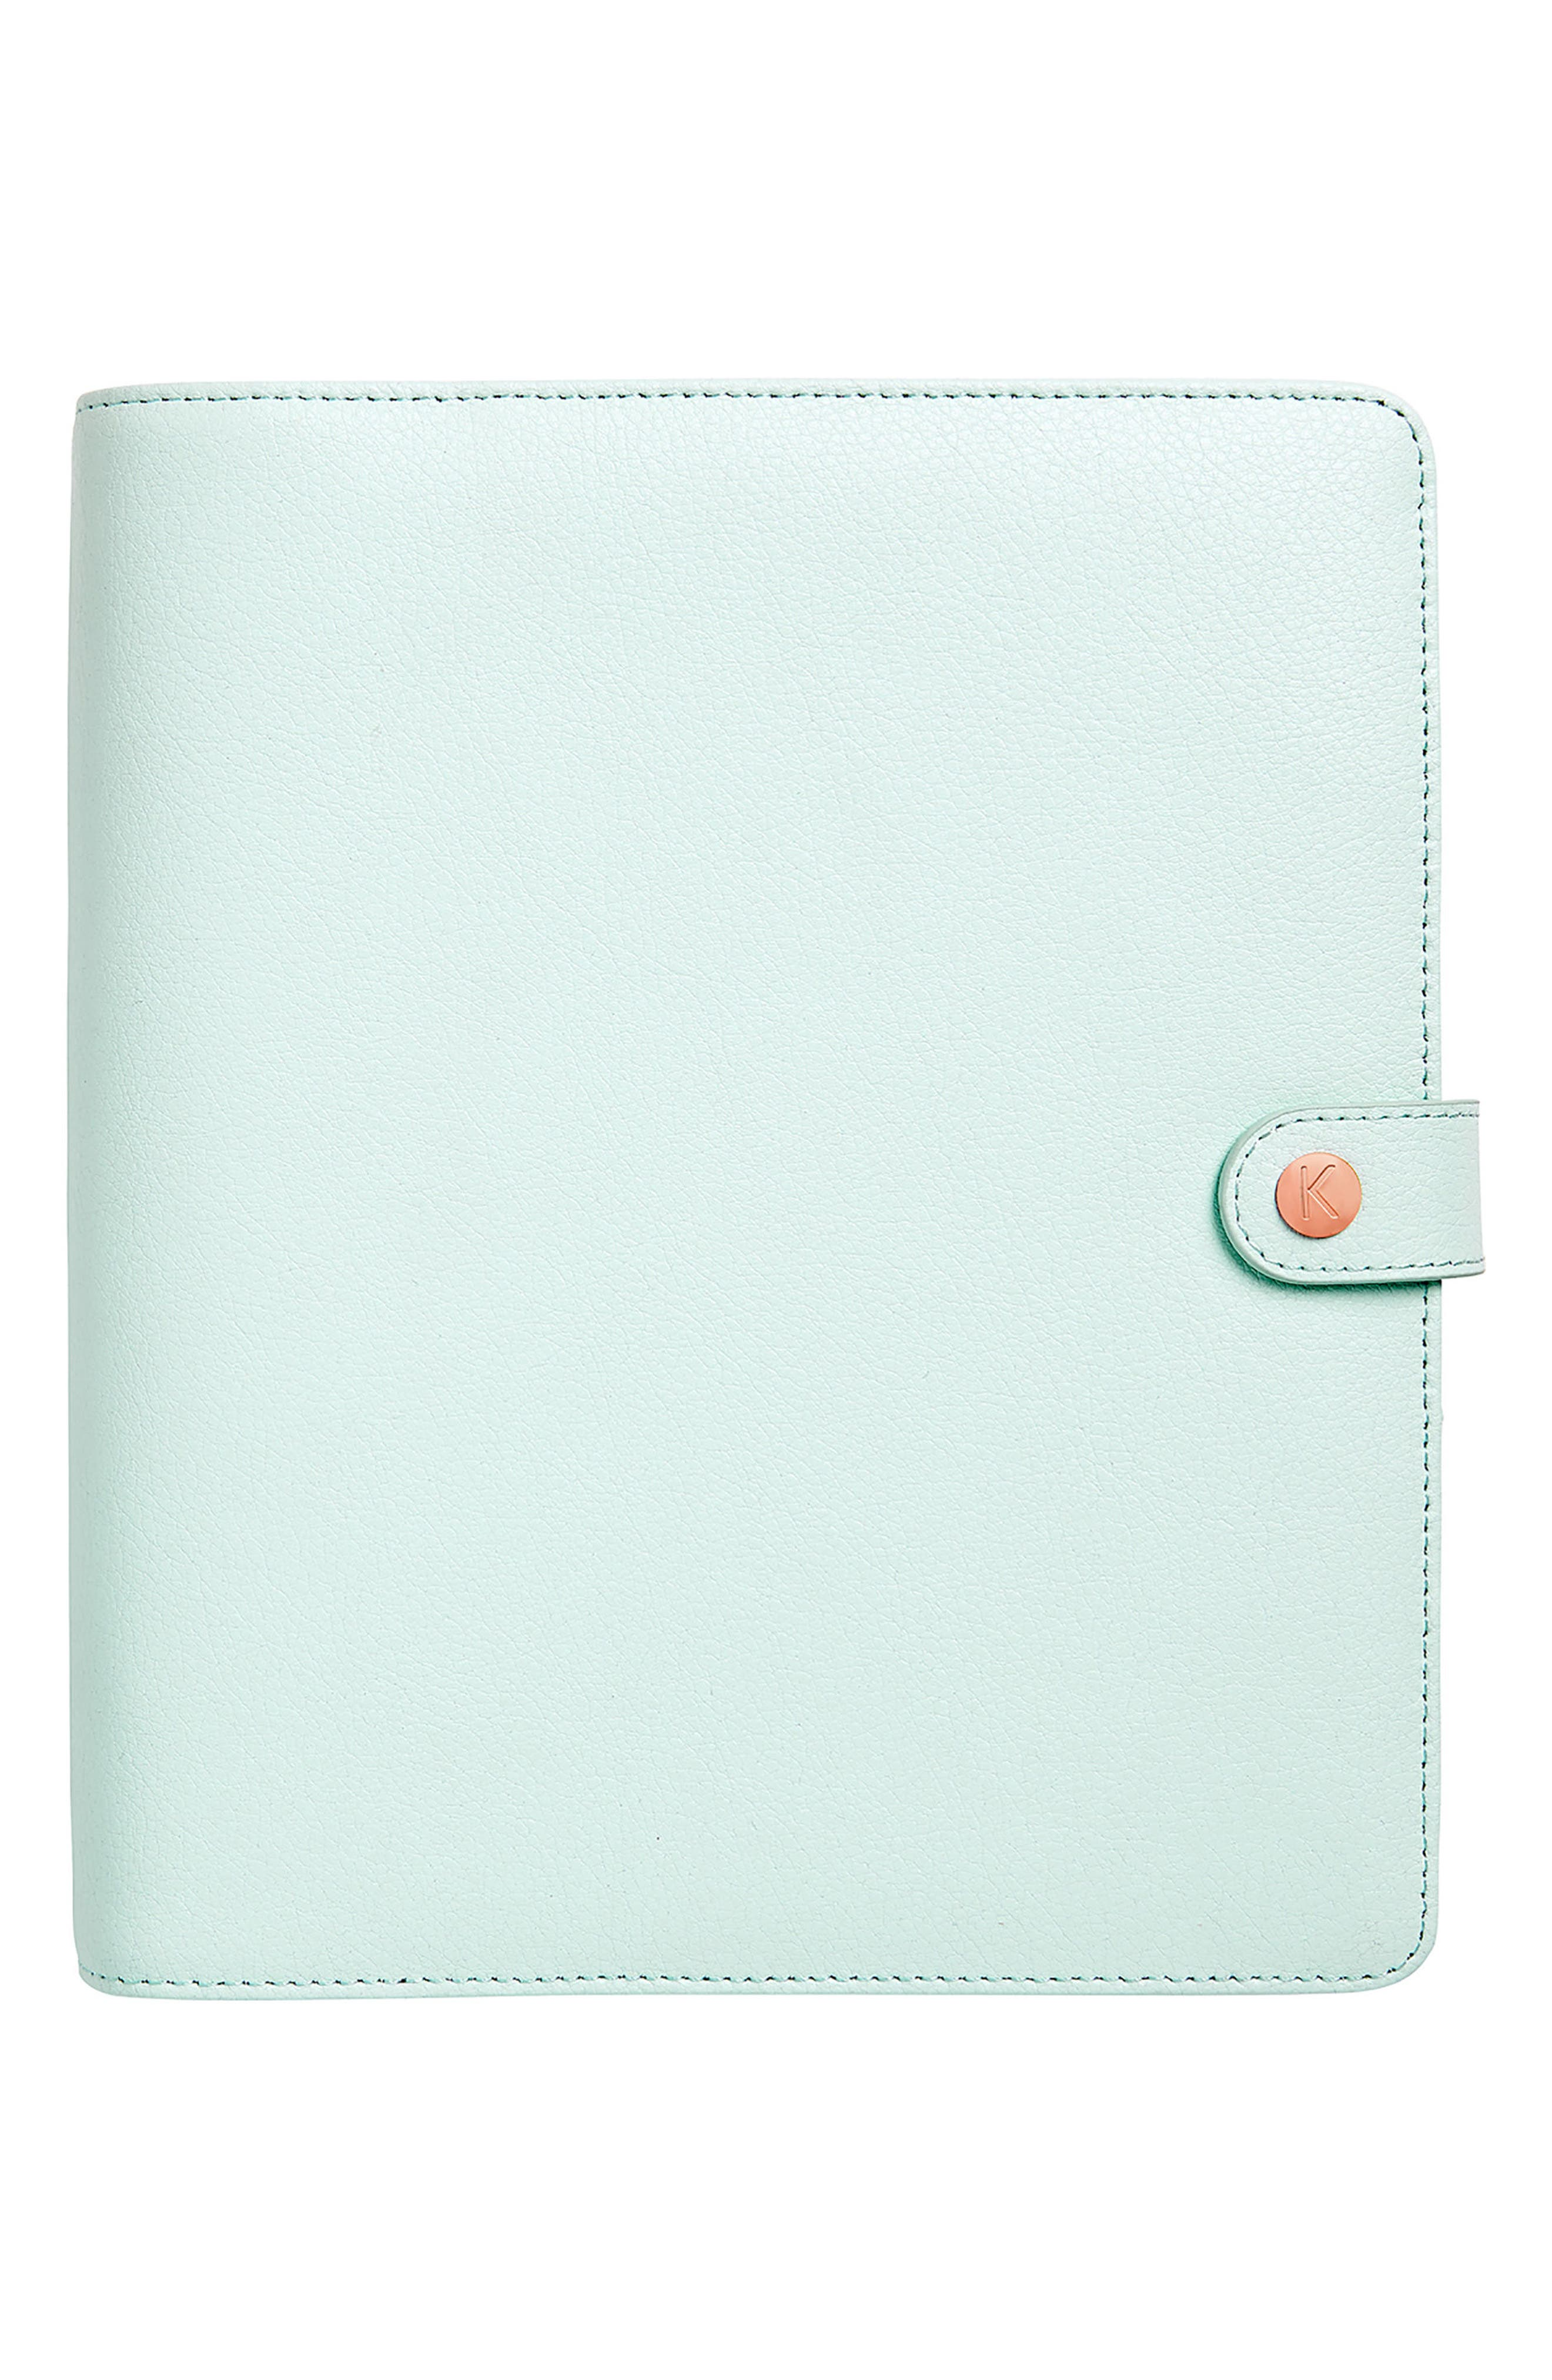 Large Leather 18-Month Perpetual Planner,                             Main thumbnail 1, color,                             304